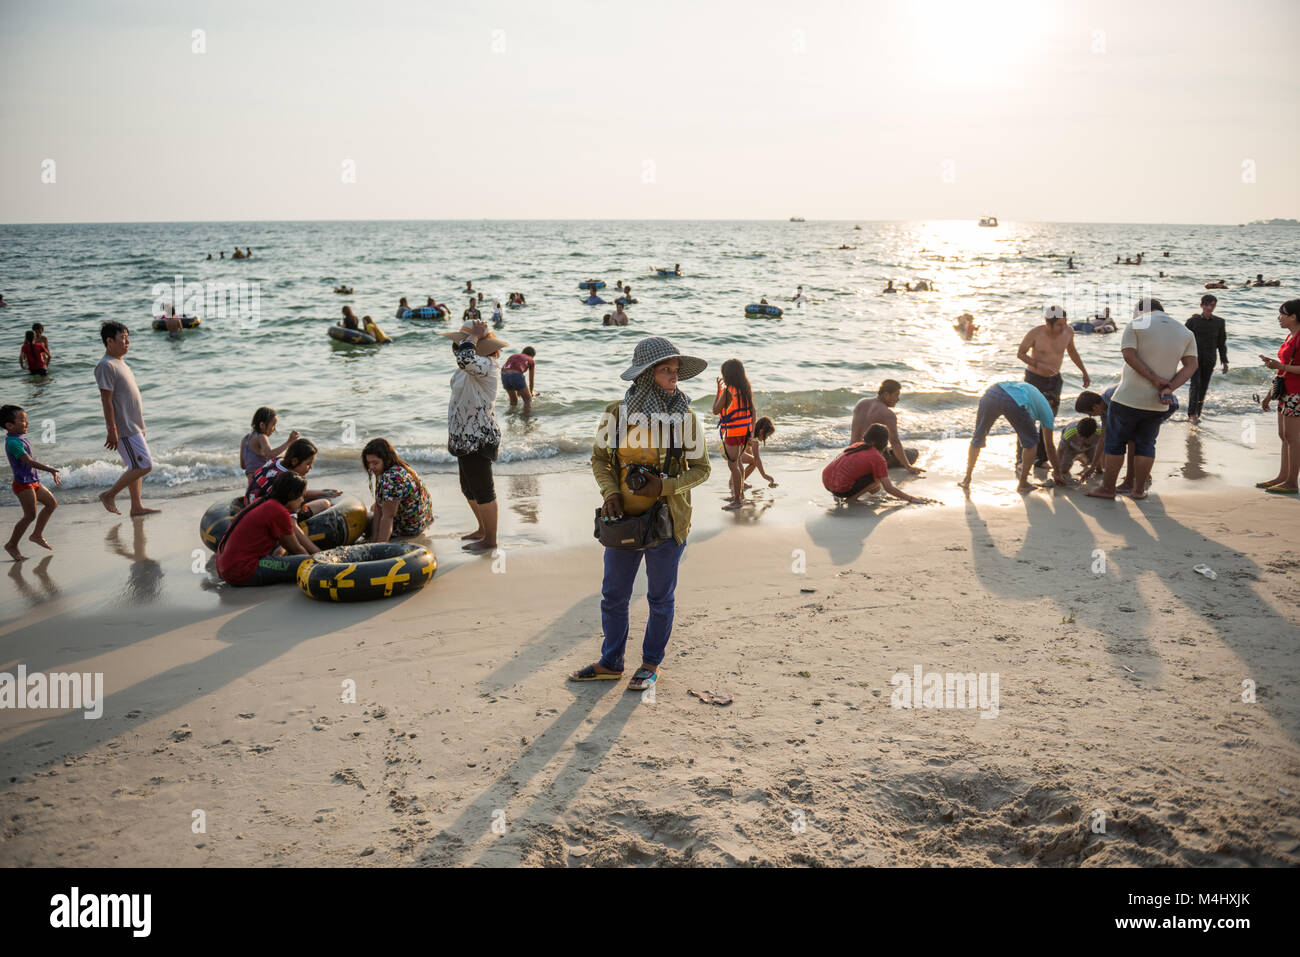 Views of the crowded beach of Sihanoukville, Cambodia at sunset. - Stock Image